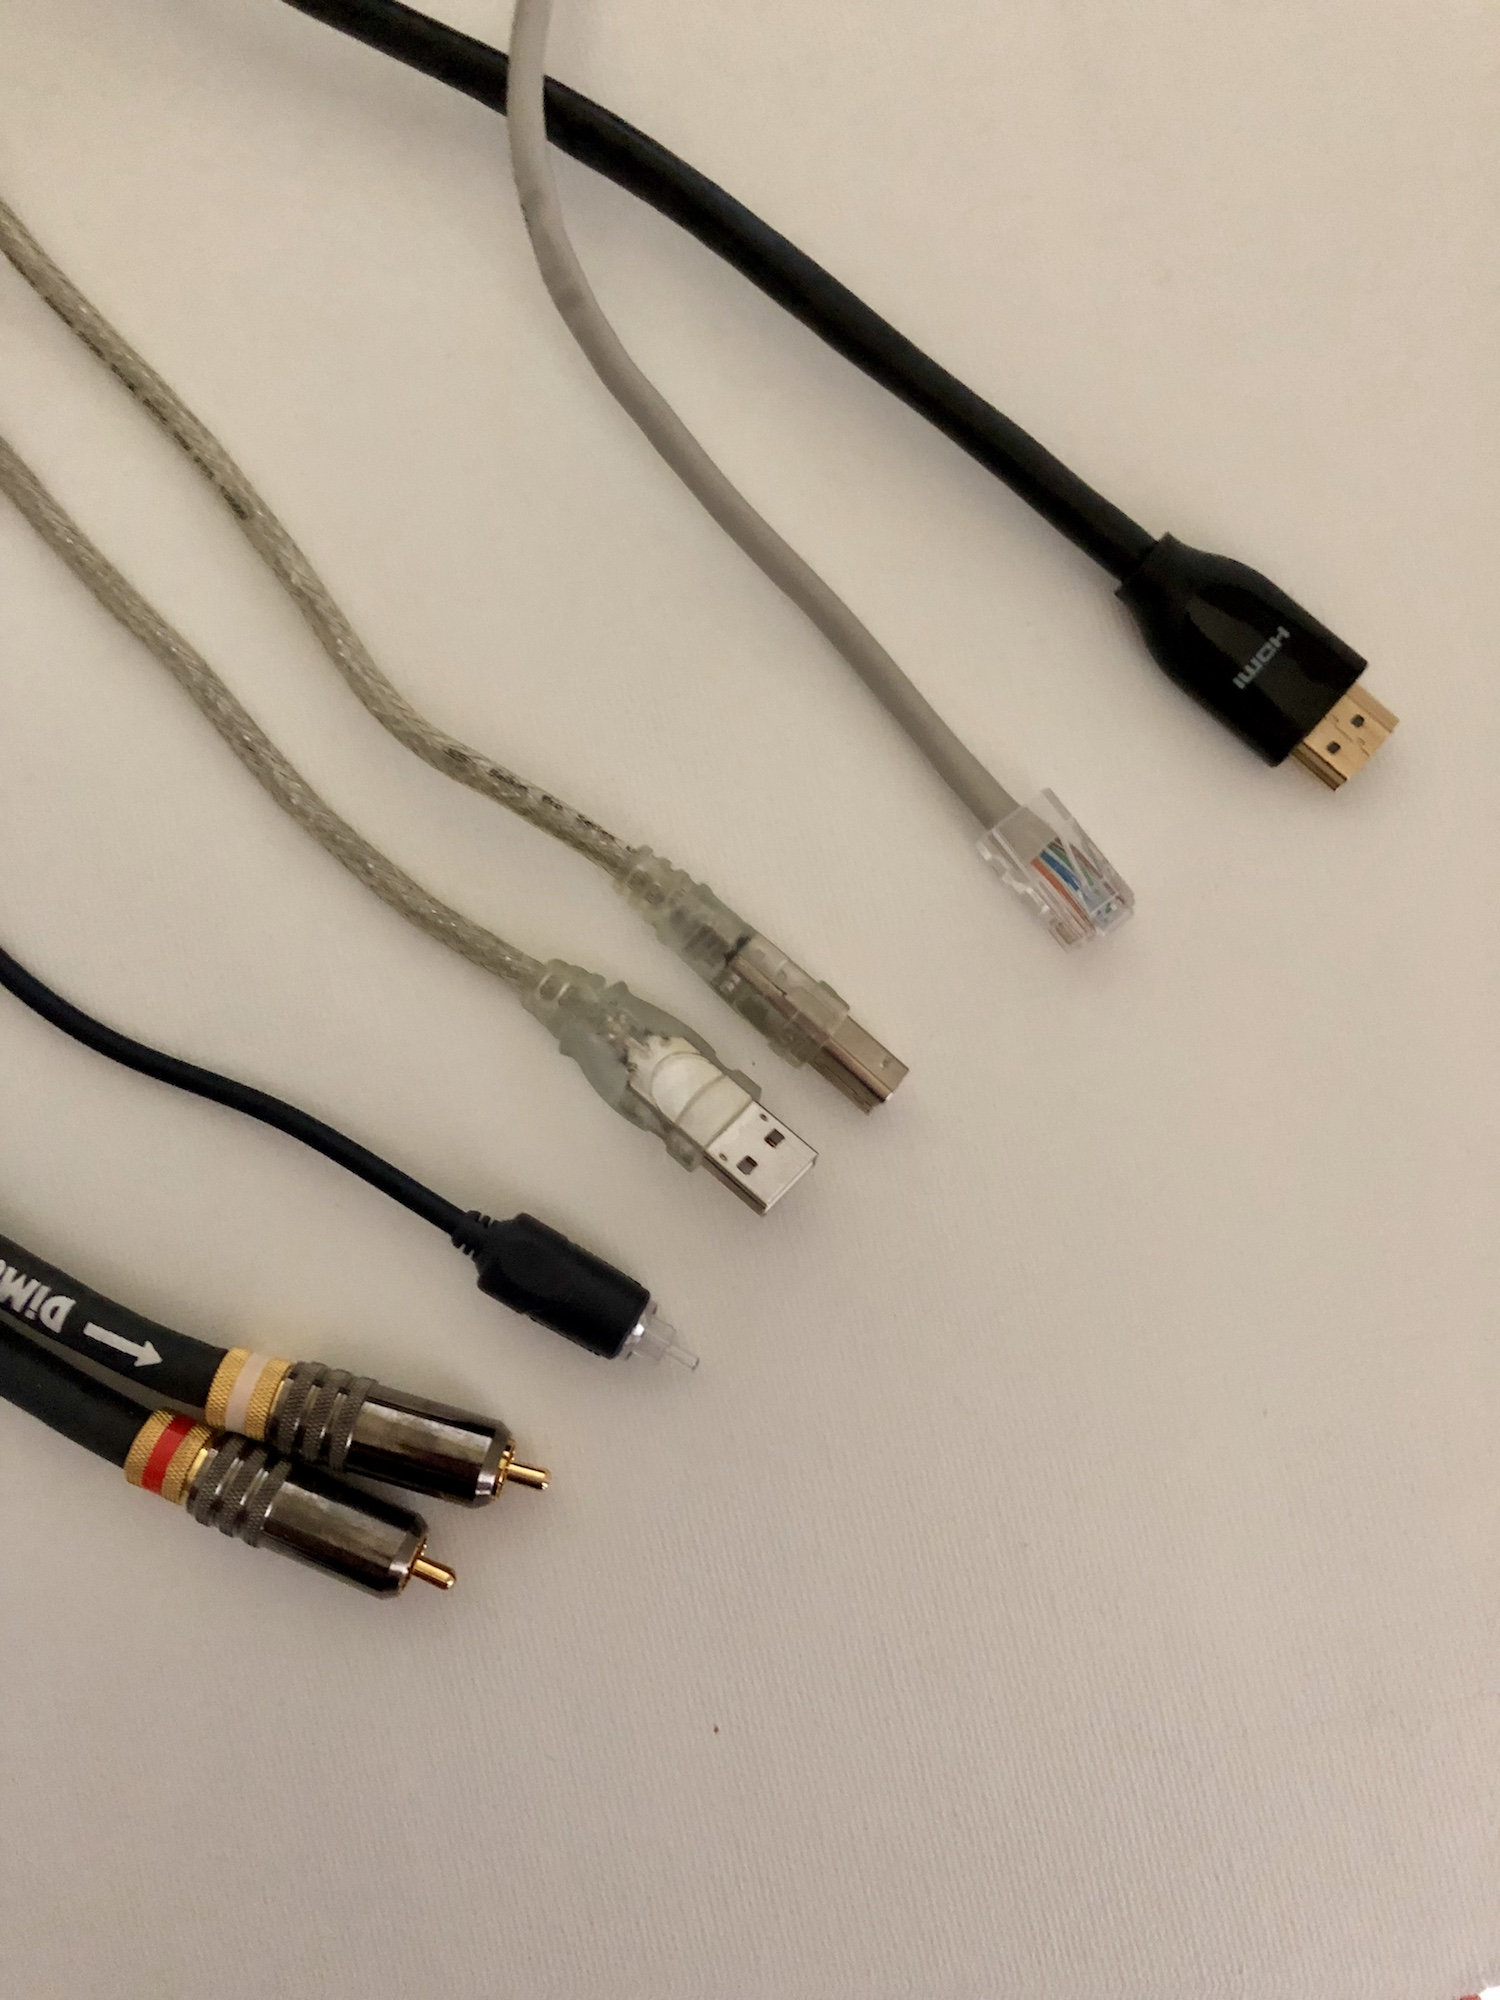 From Left to Right:  A pair of Stereo Analog Audio RCA Interconnect cables, an Optical (S/PDIF) Digital Audio cable, a USB Digital Interconnect cable with a Type-A (thin rectangular) plug on one end and a Type-B (squarish) plug on the other, a CAT 5e Ethernet cable, and a Premium Certified HDMI cable.